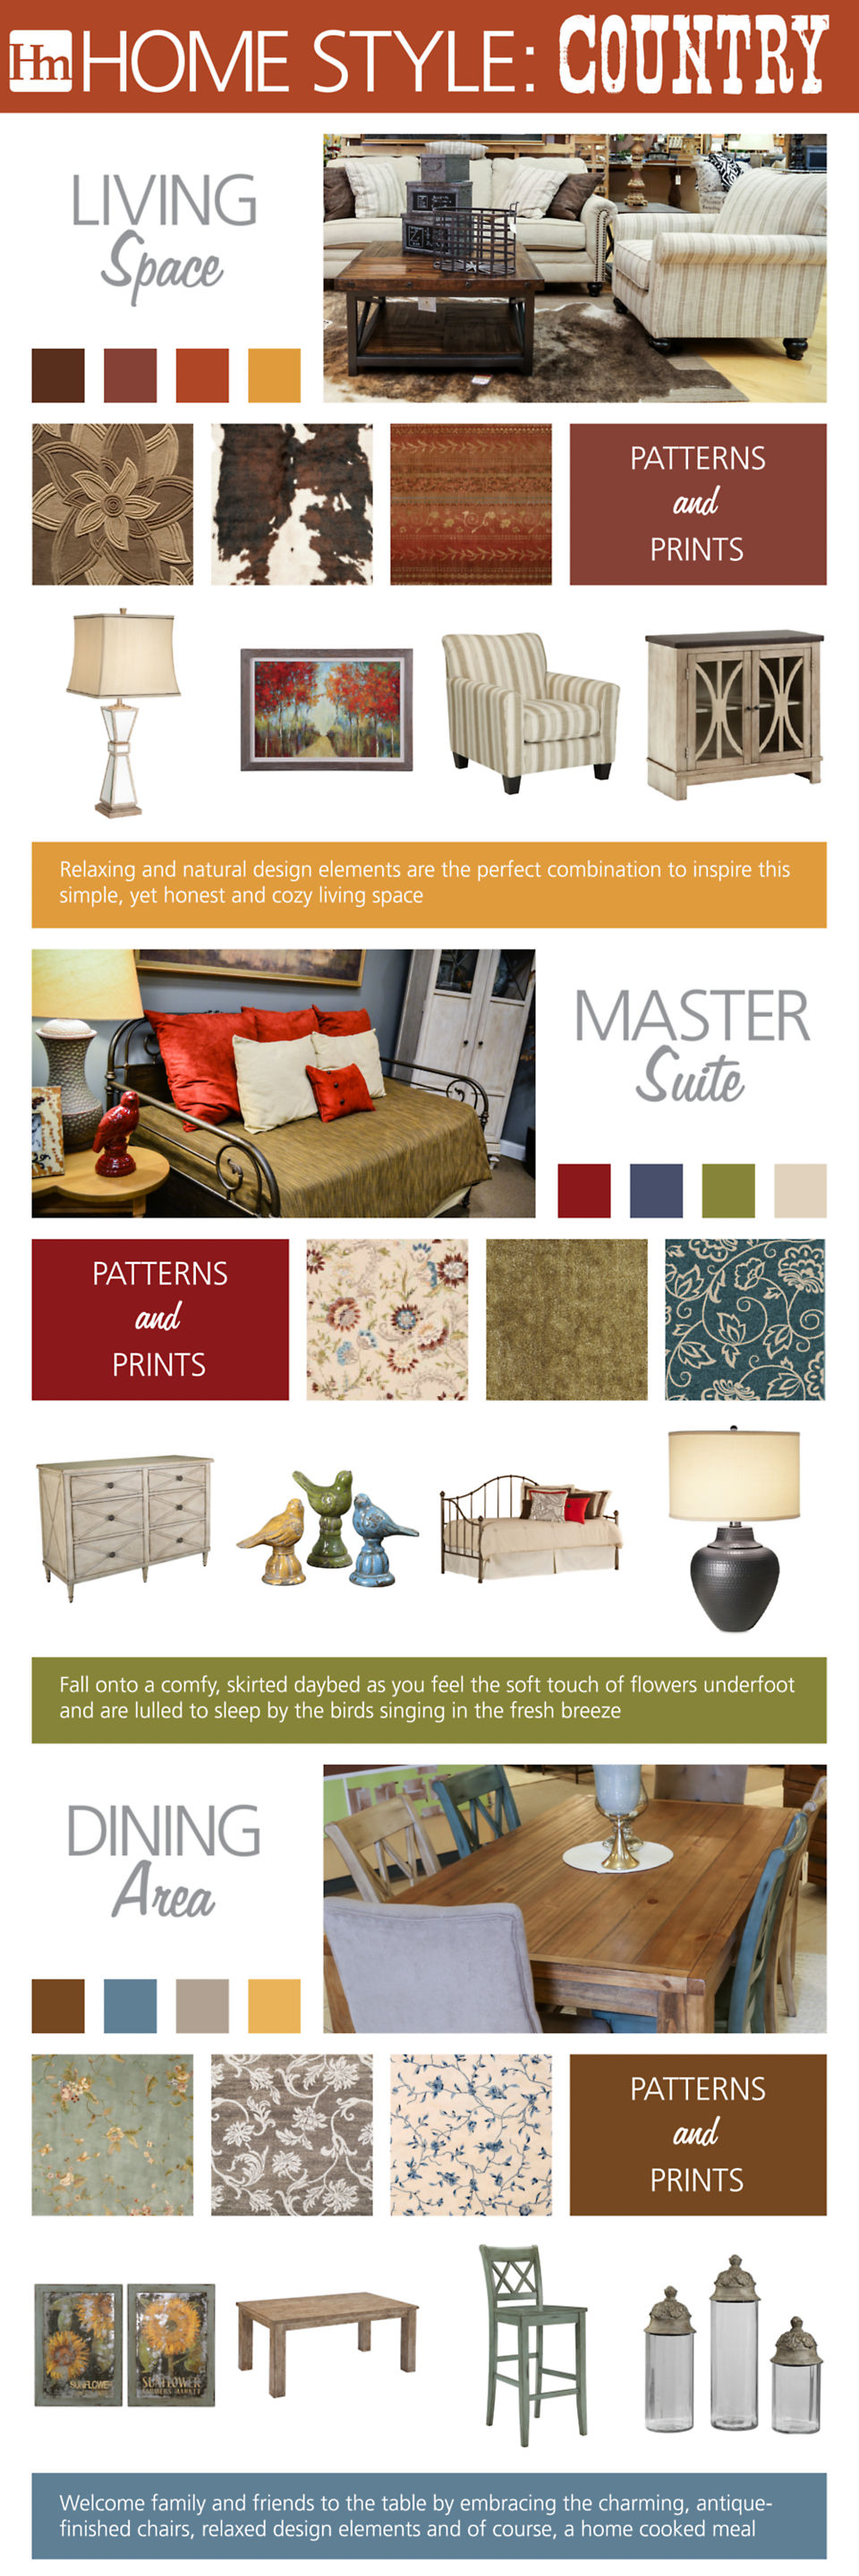 Rustic country interior design style infographic